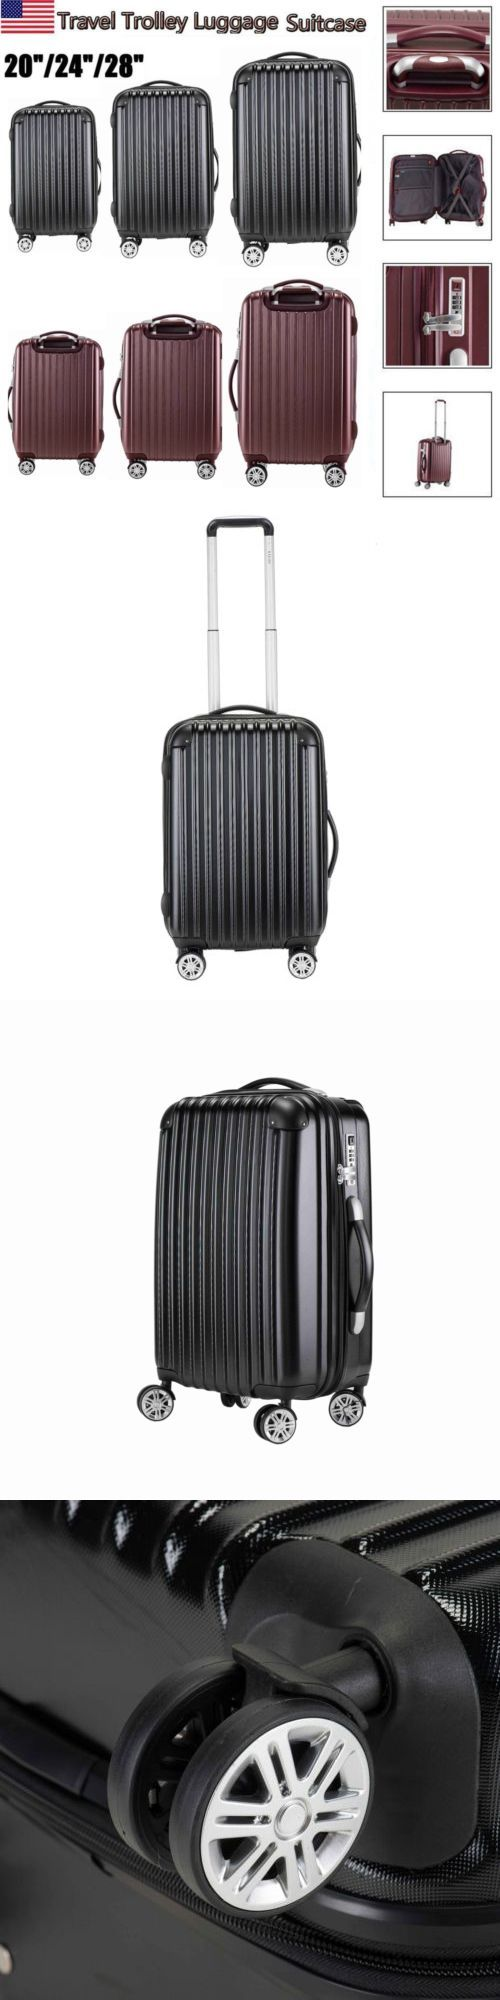 Vintage Luggage and Travel Accs 183477: 20 24 28 Hard Shell Luggage Spinner Suitcase Trolley Box Travel Case Cabin Us -> BUY IT NOW ONLY: $78 on eBay!